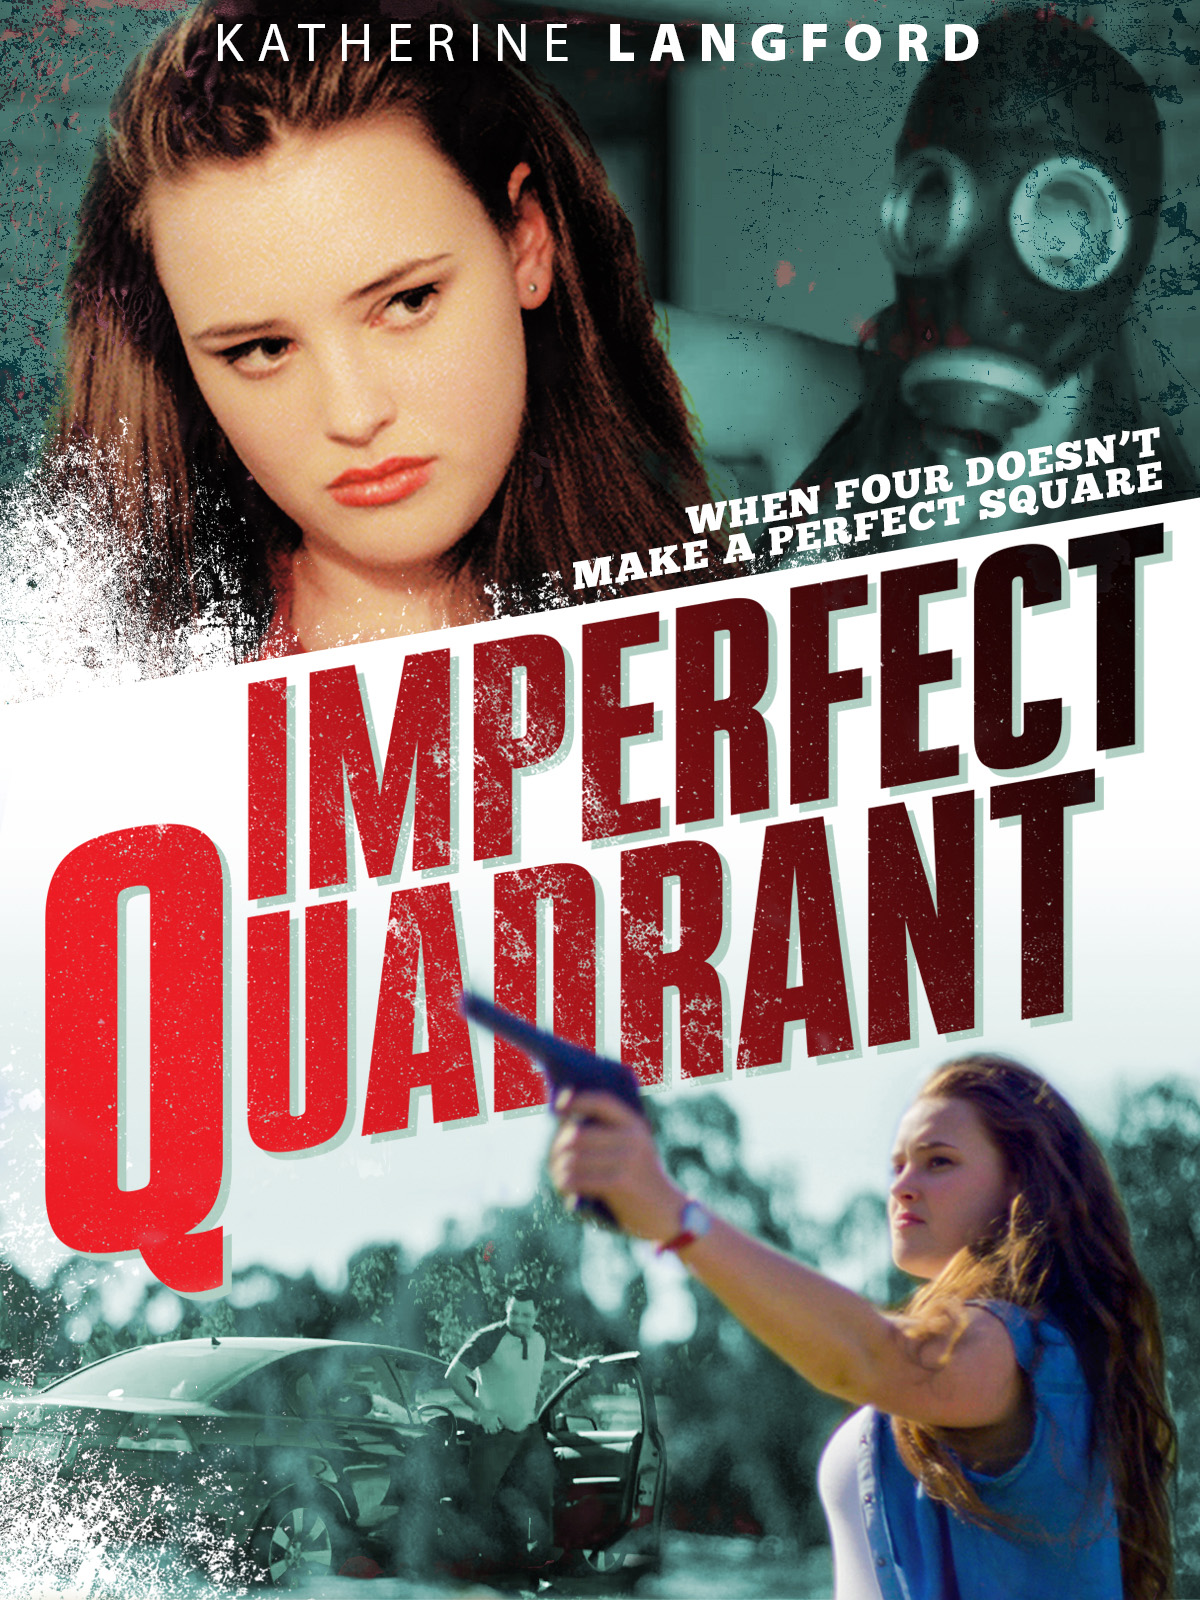 Imperfect Quadrant VOD